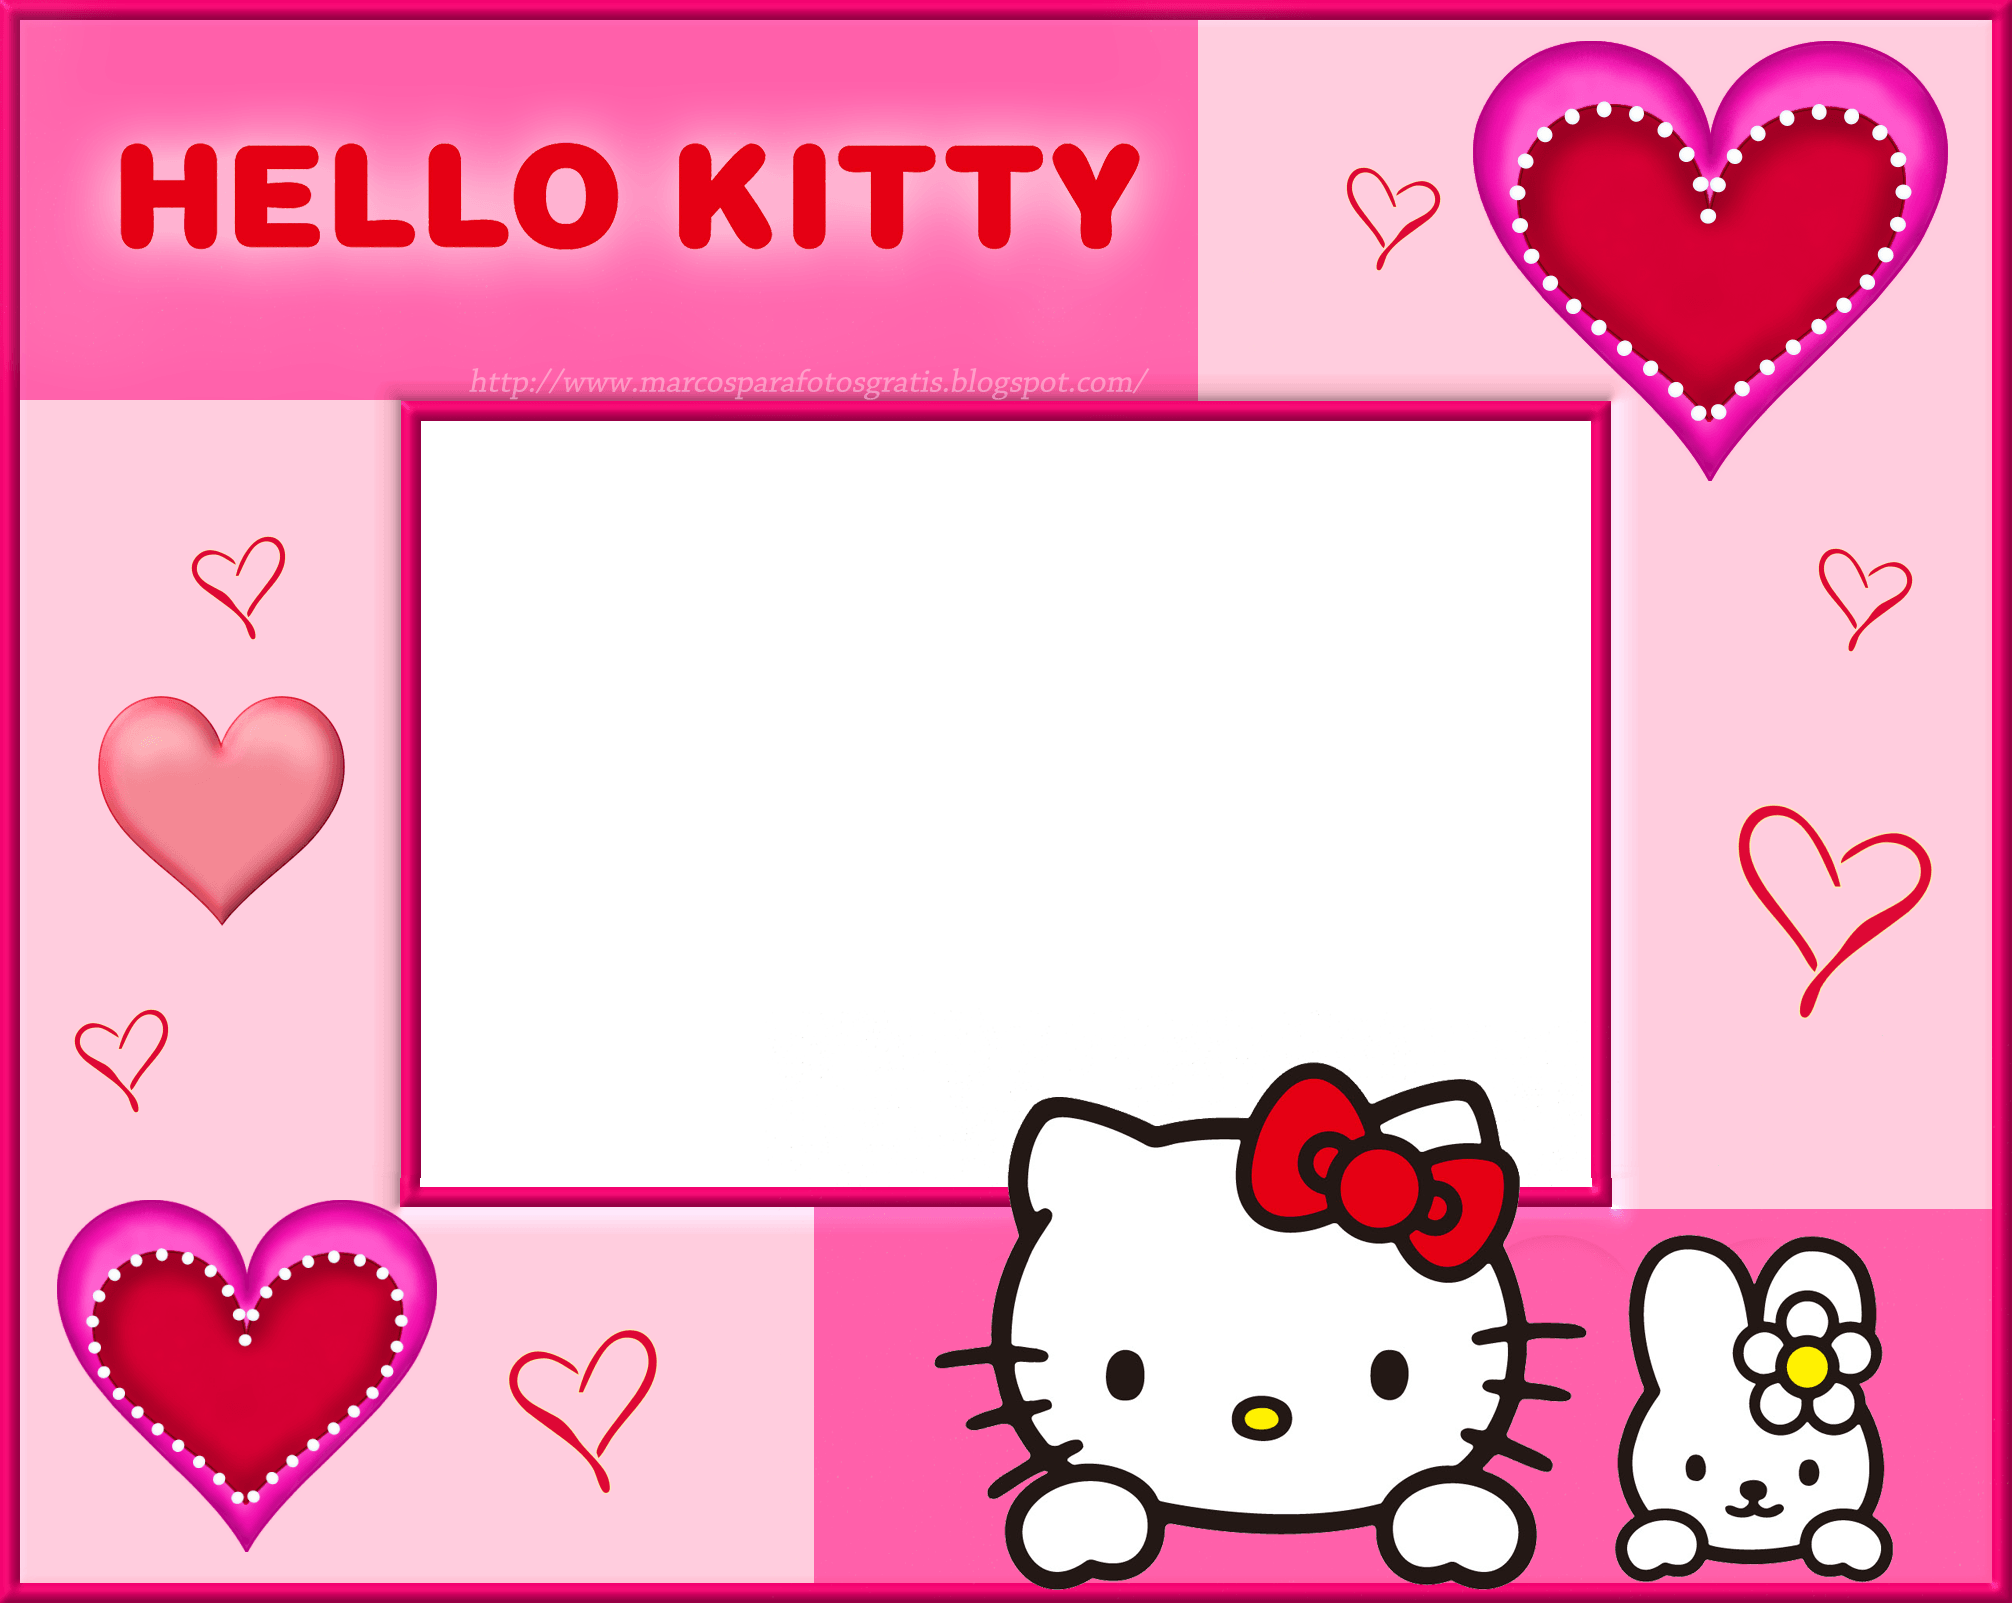 Hello kitty wallpapers 2015 wallpaper cave - Cuisine hello kitty ecoiffier ...